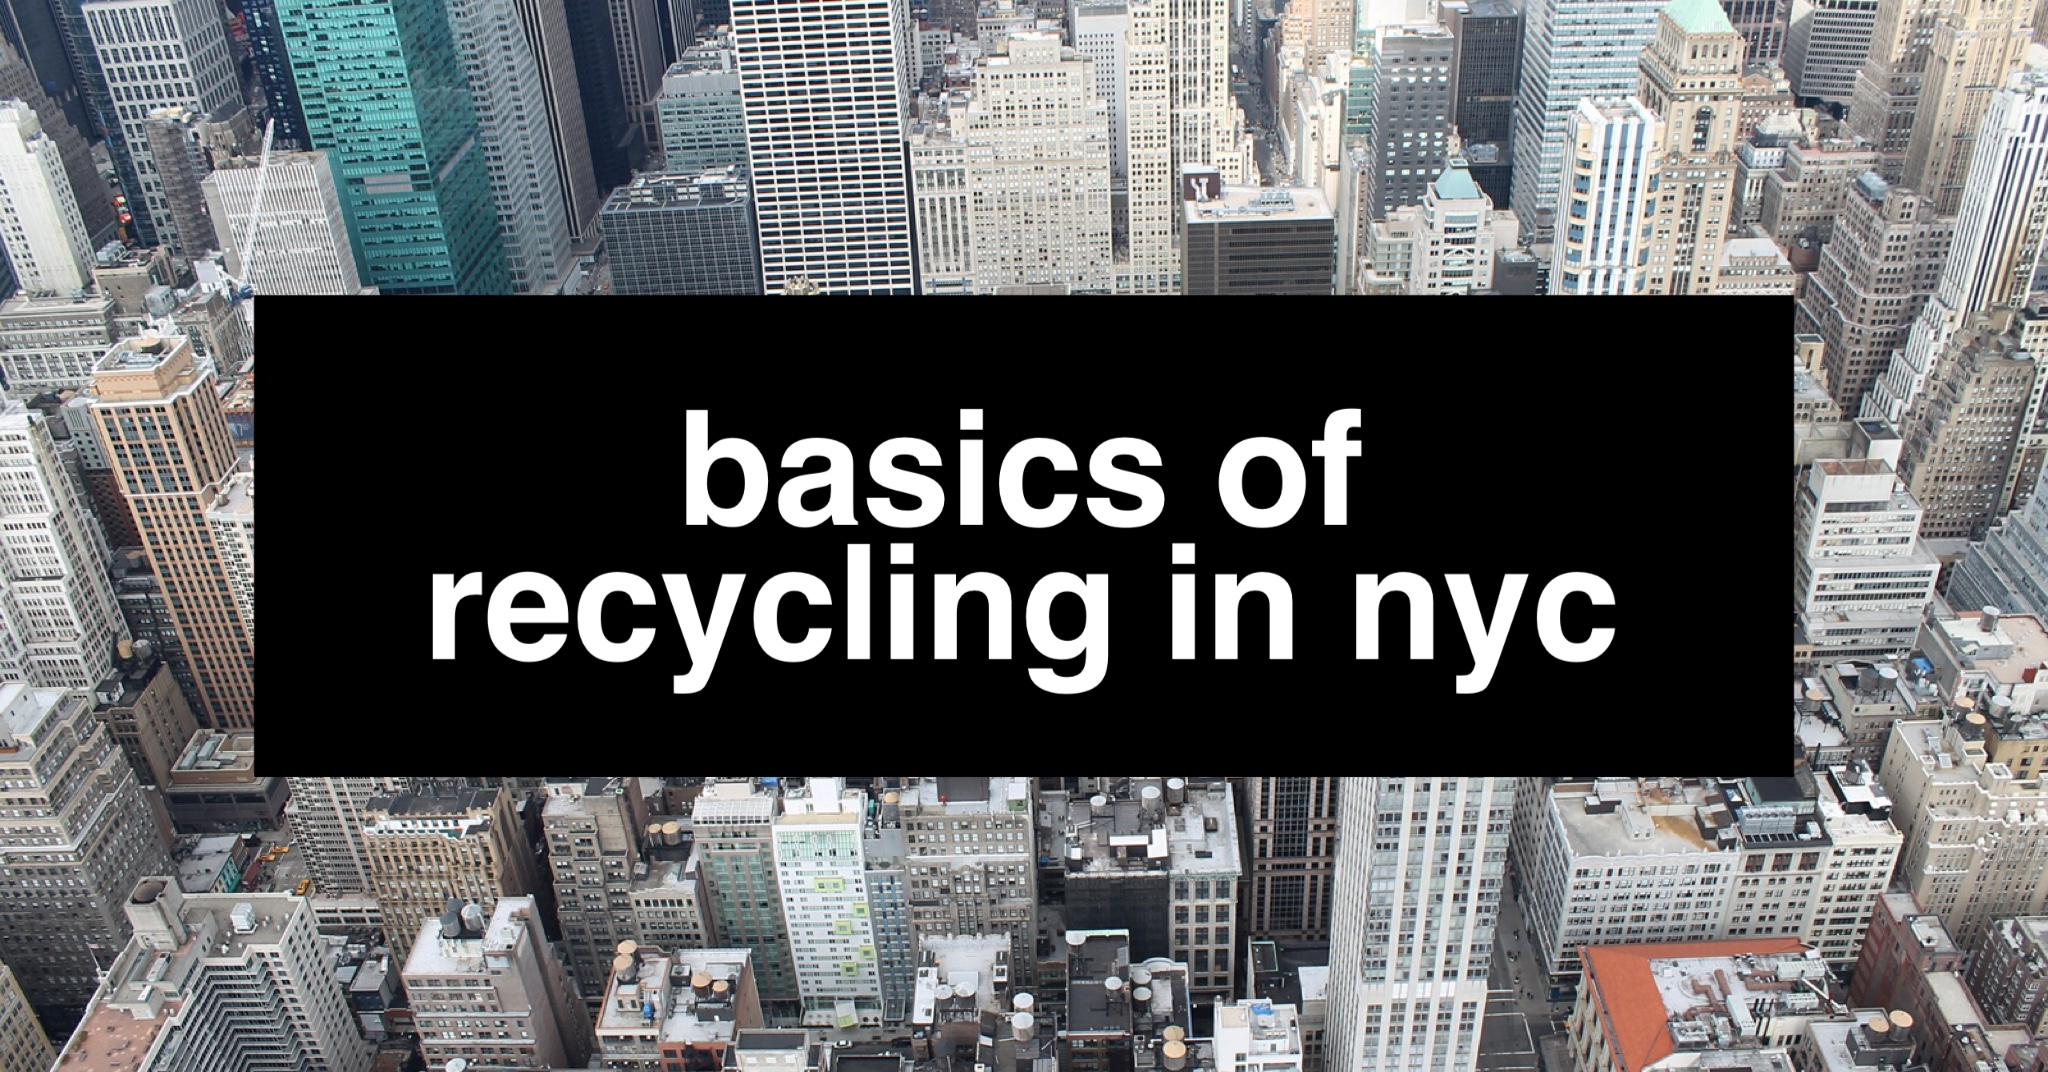 basics-of-recycling-in-nyc